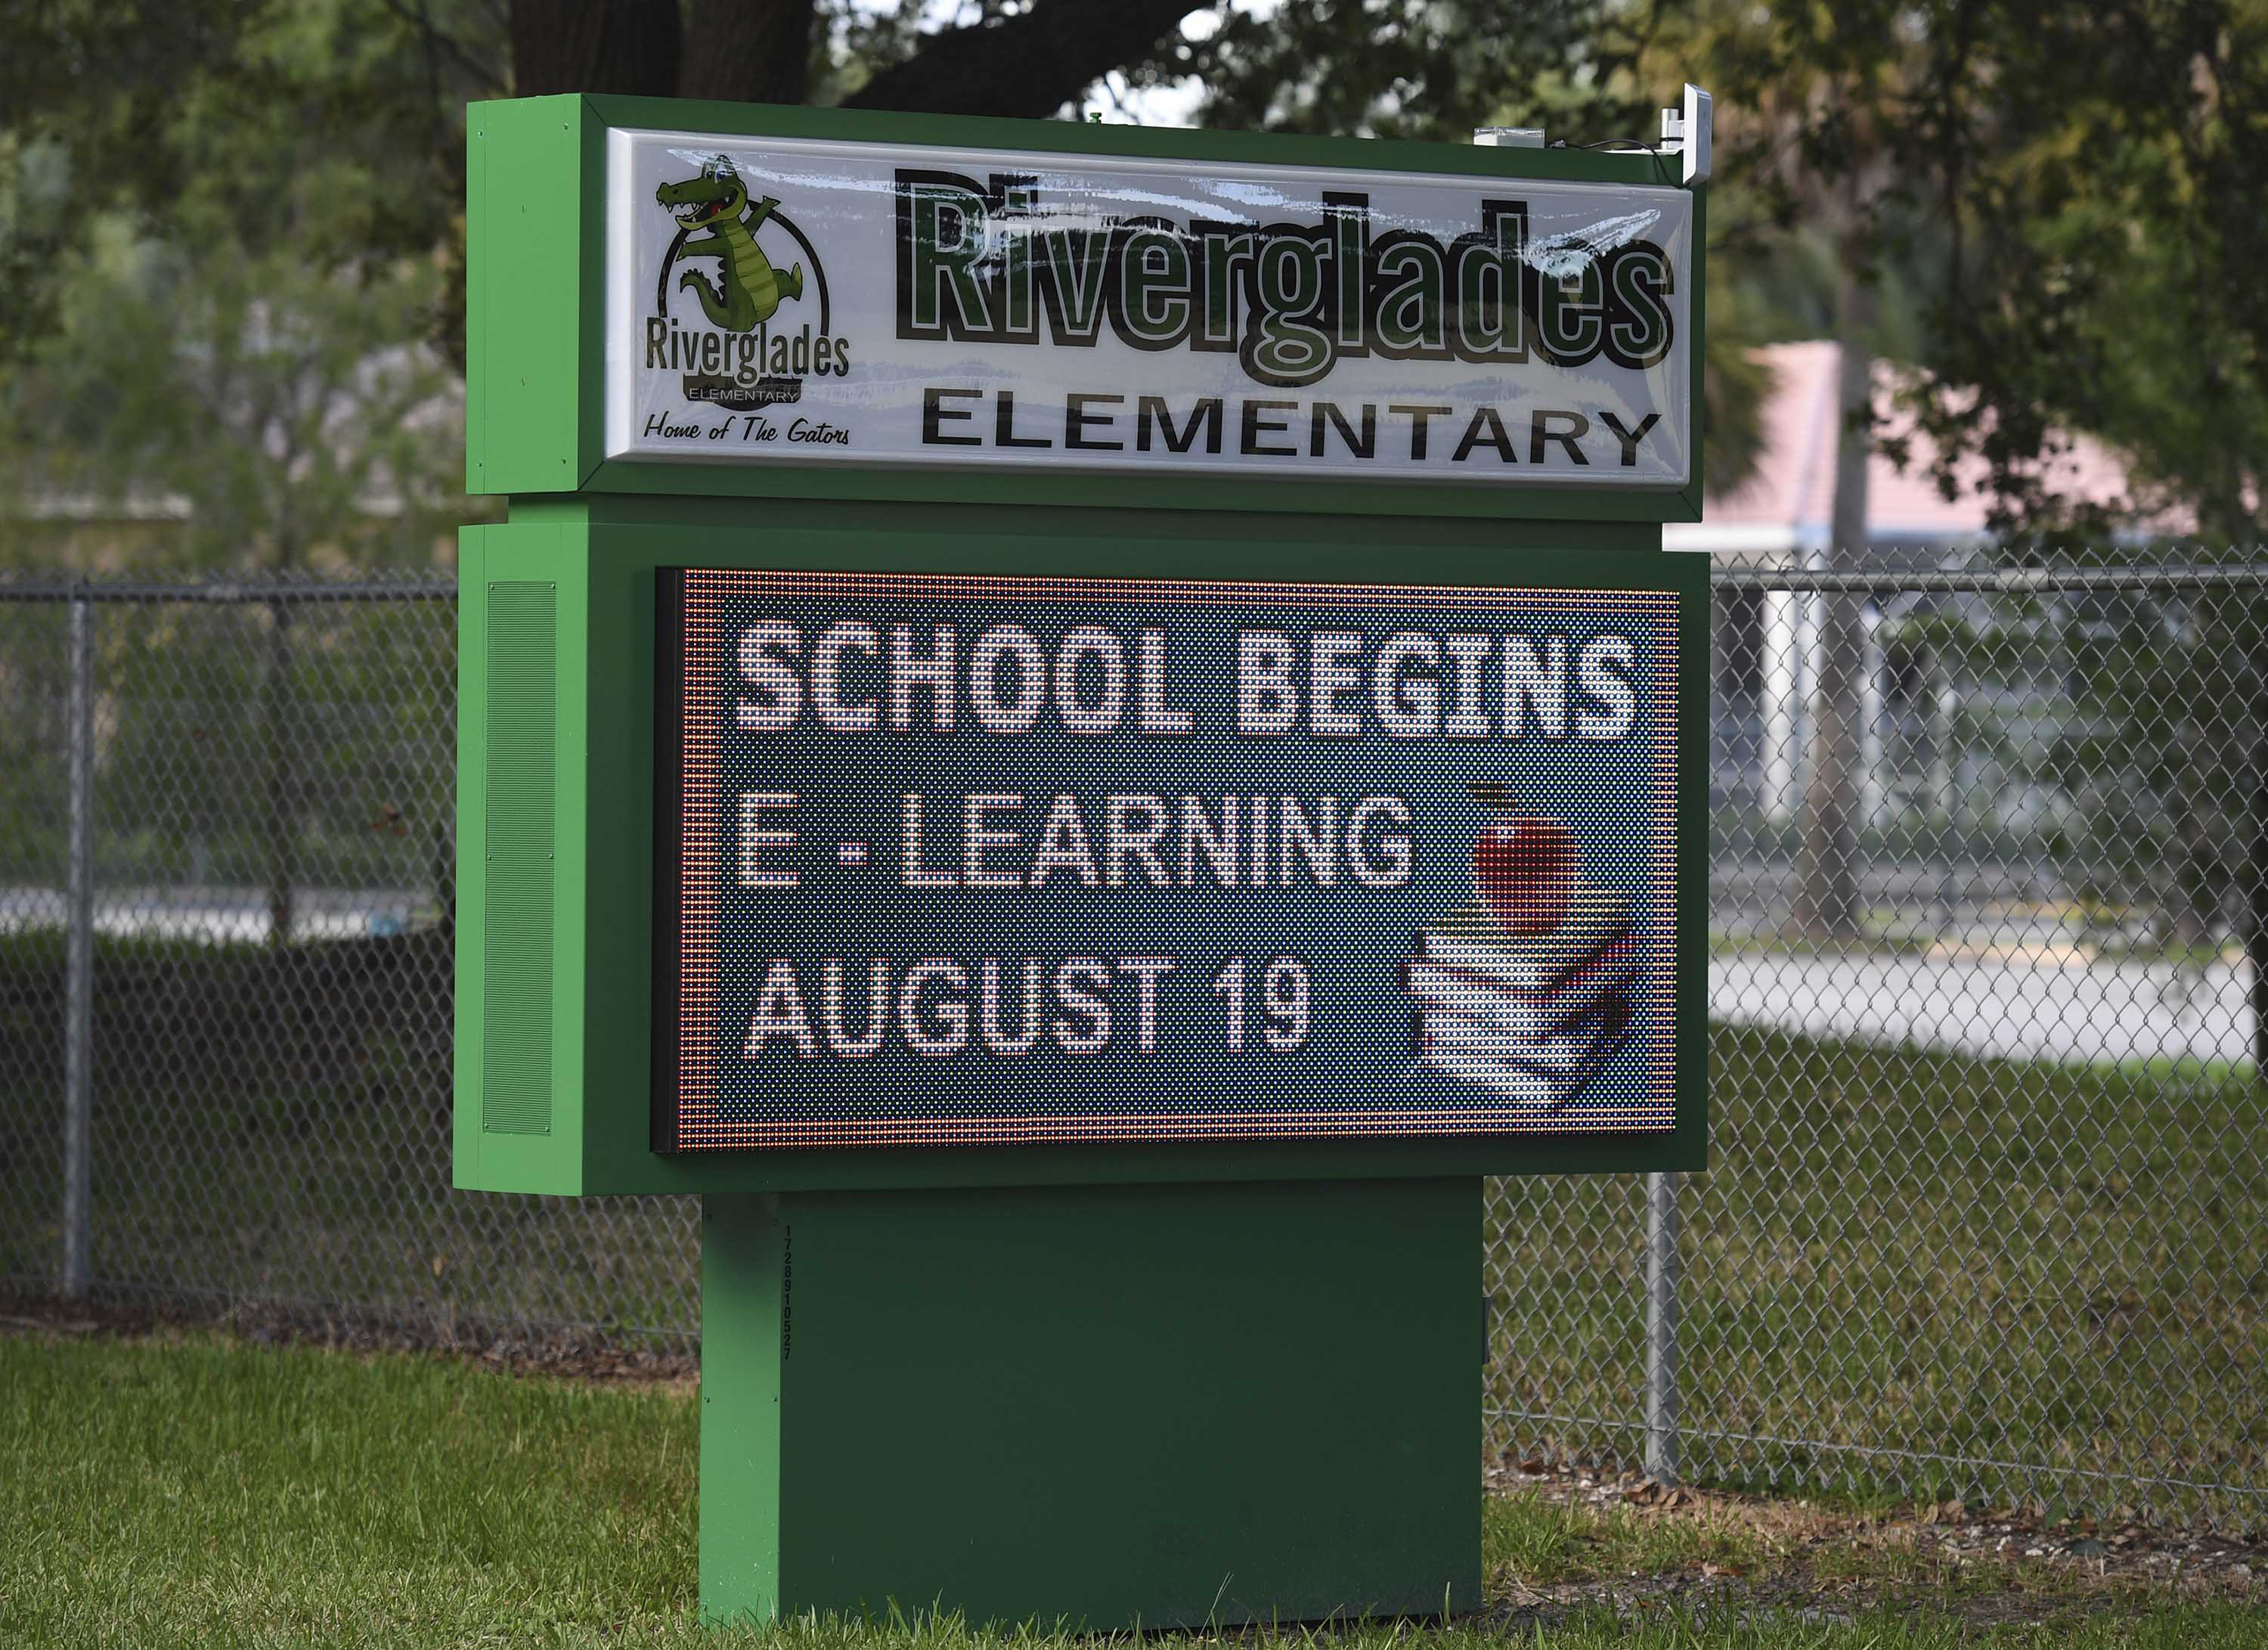 A sign with information about 'eLearning' is pictured outside Riverglades Elementary School in Pompano Beach, Florida, on August 11.